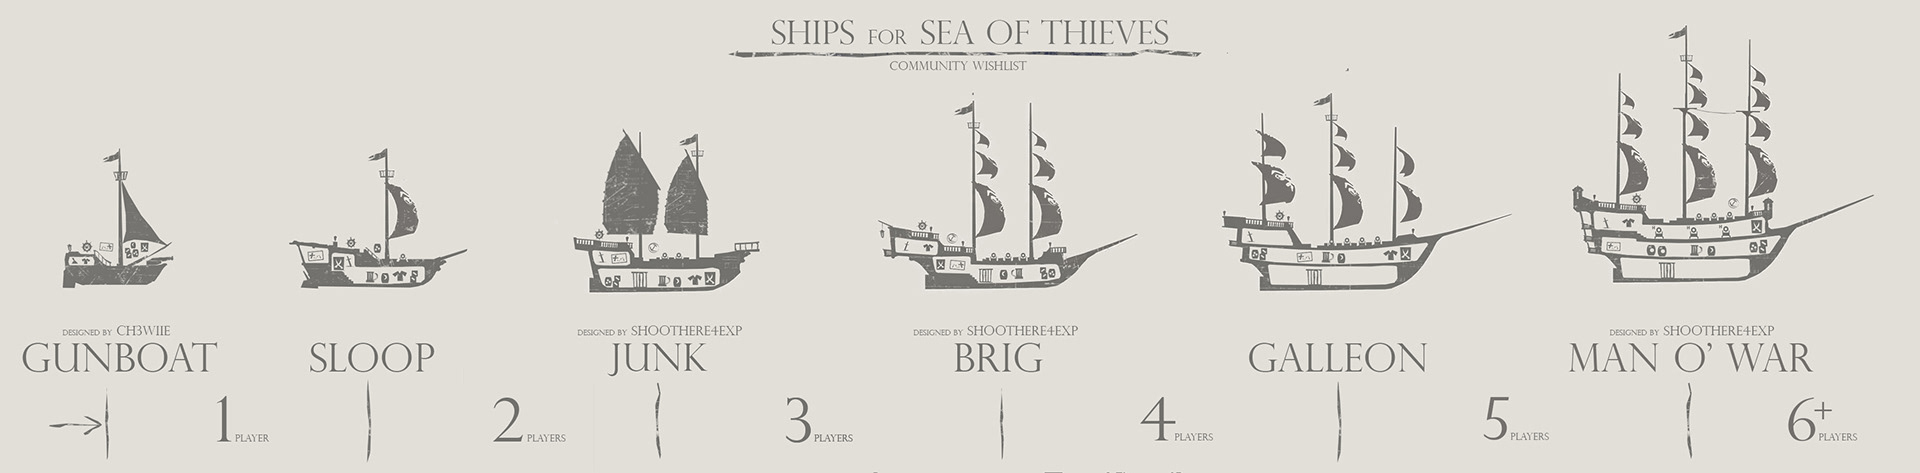 5 Ship Types for Sea of Thieves (Speculation /Graphic) | Sea of